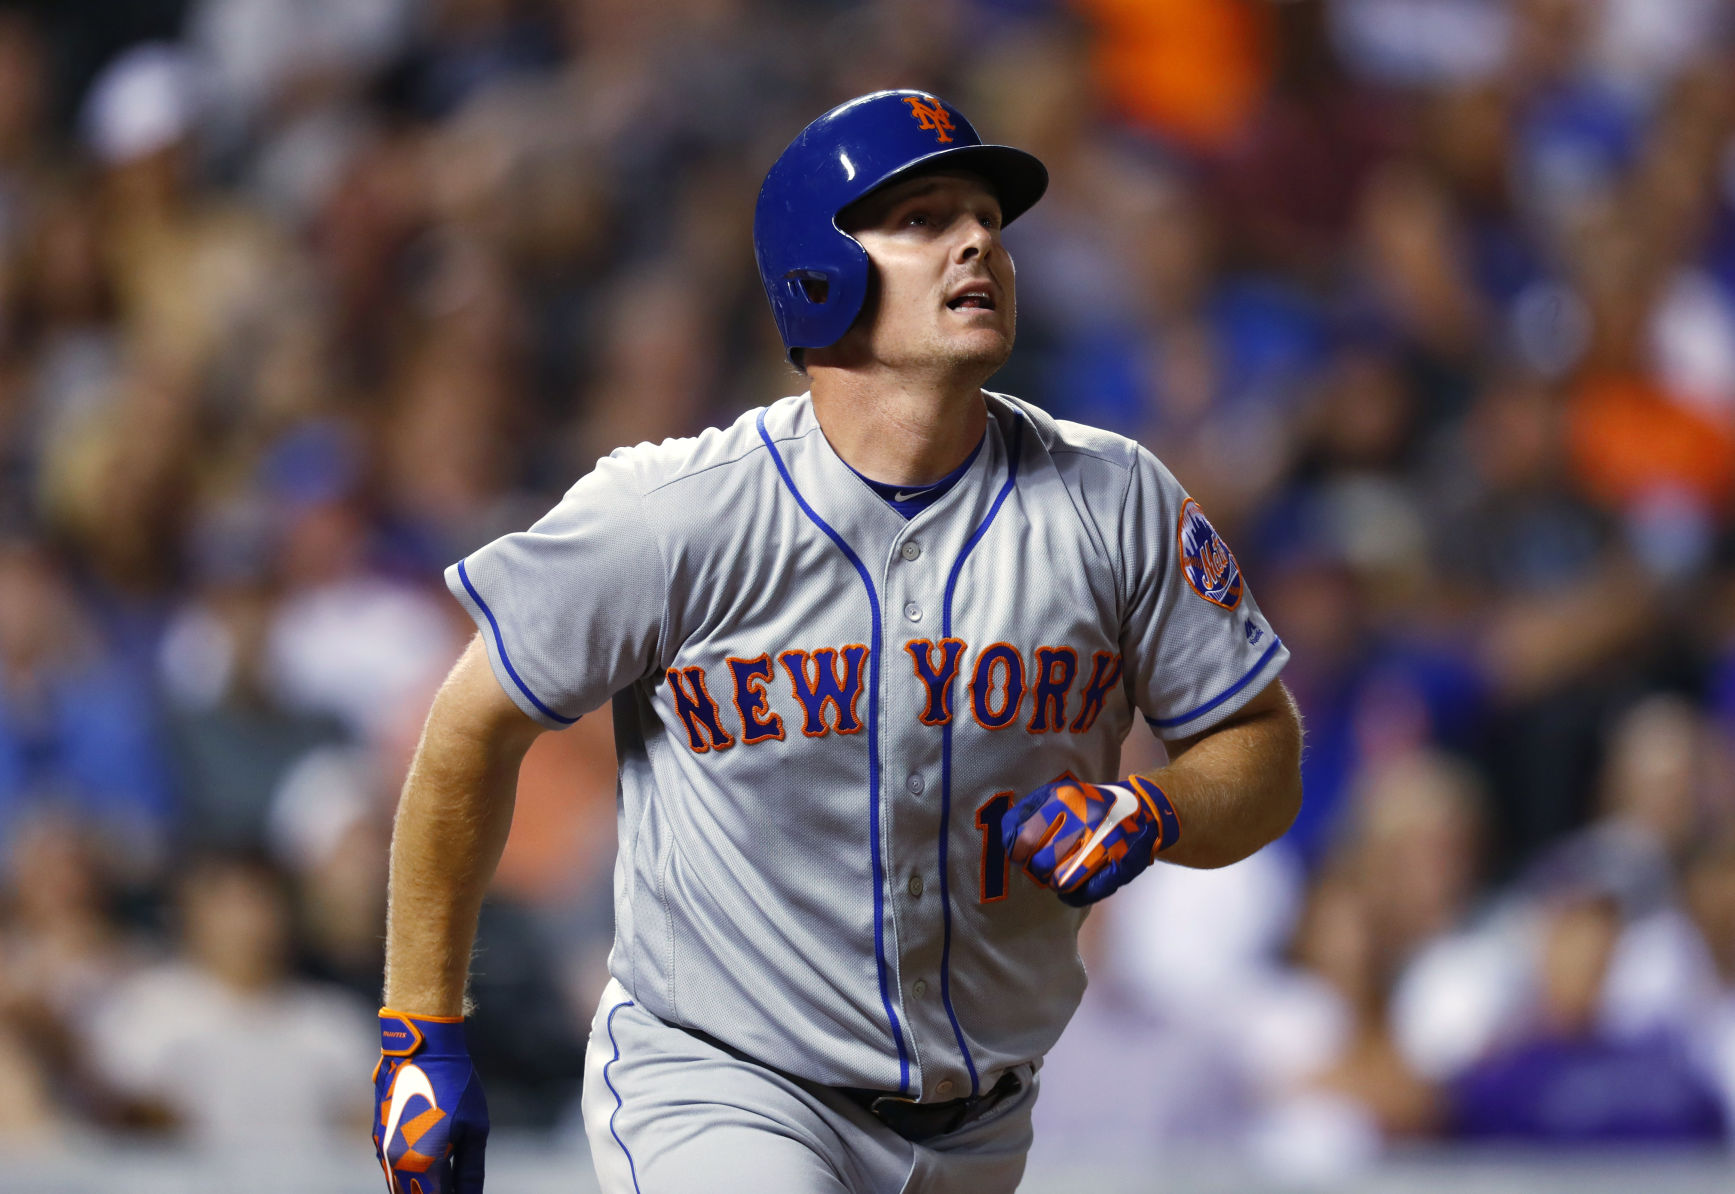 Baseball notes: Bruce gets moved from Mets to Indians